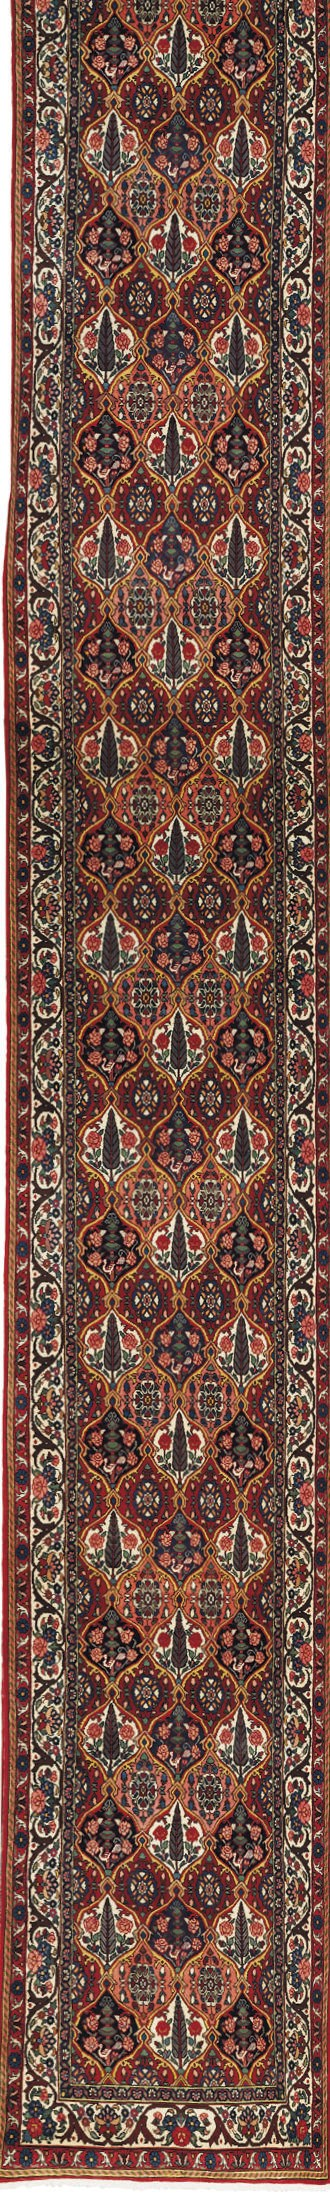 A FINE BAKHTIARI RUNNER, WEST